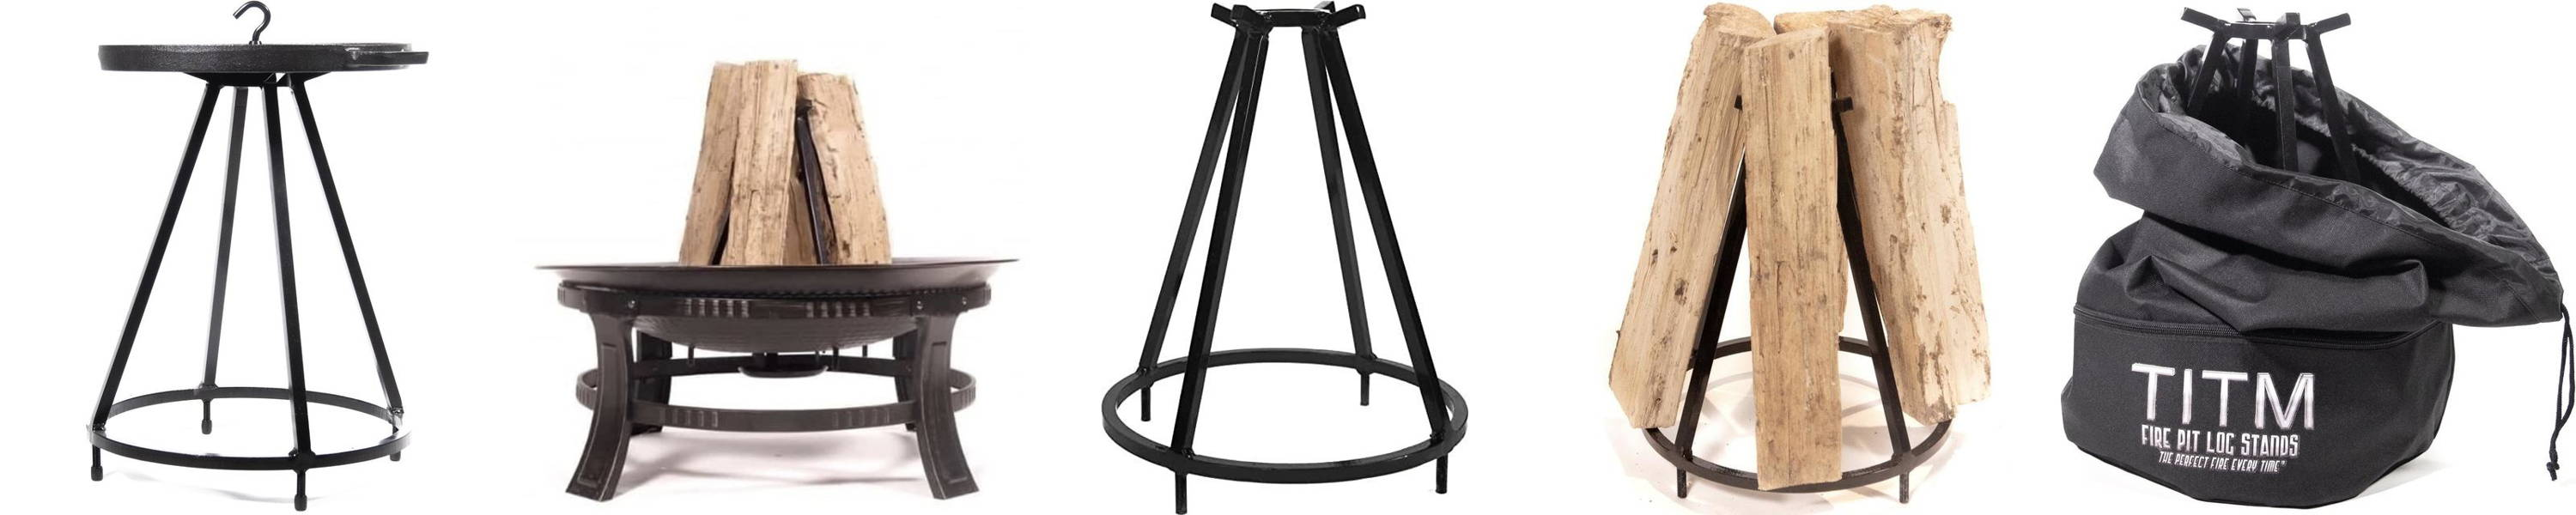 TITM Fire Pit Log Stands